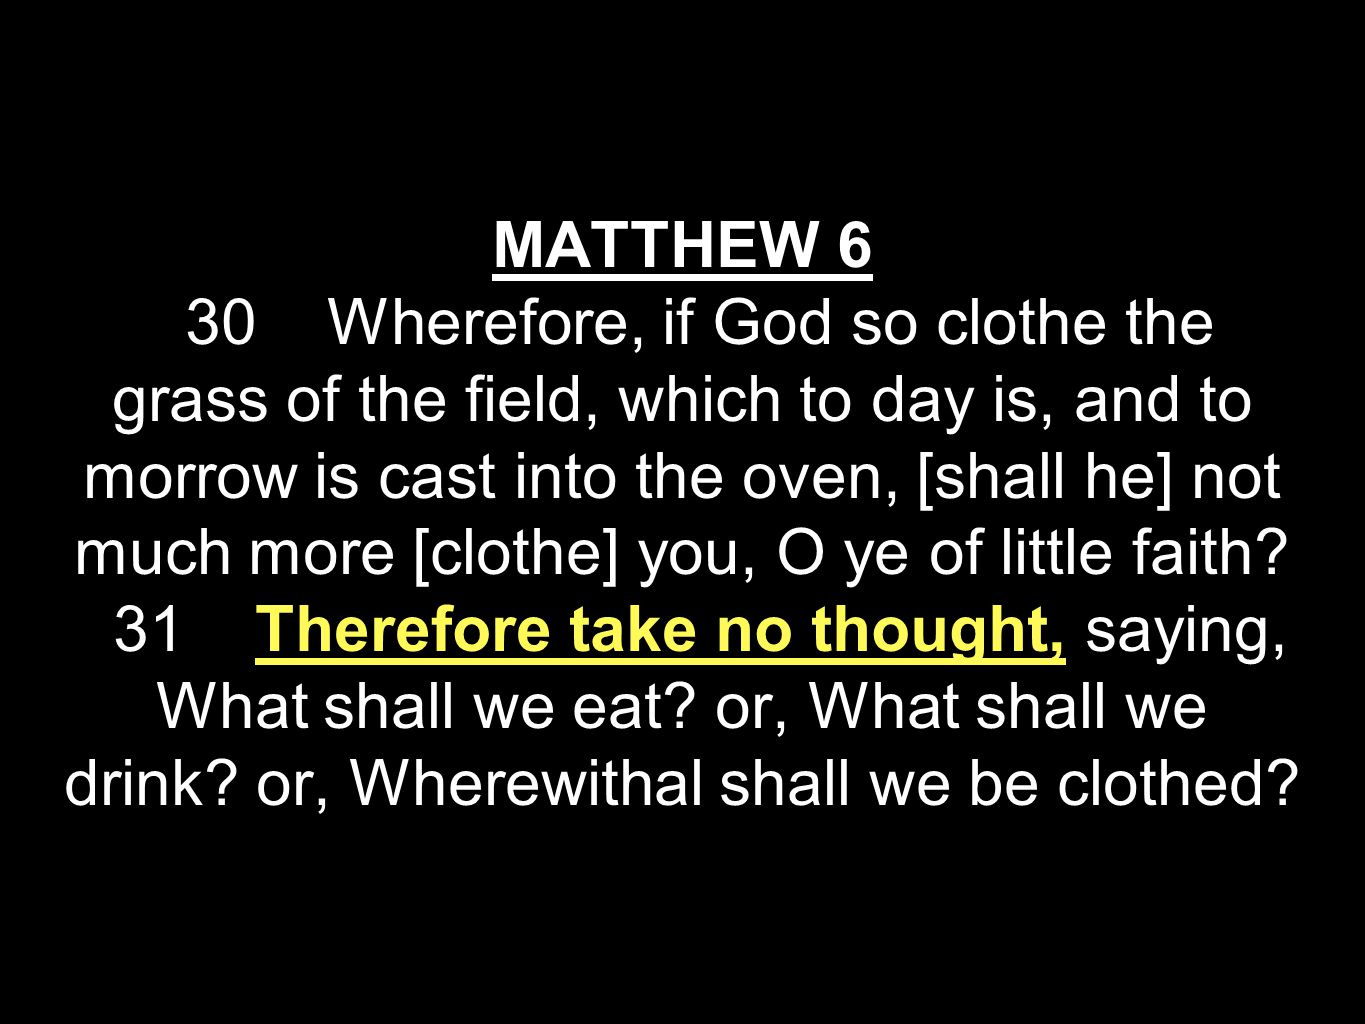 MATTHEW 6 30 Wherefore, if God so clothe the grass of the field, which to day is, and to morrow is cast into the oven, [shall he] not much more [clothe] you, O ye of little faith.